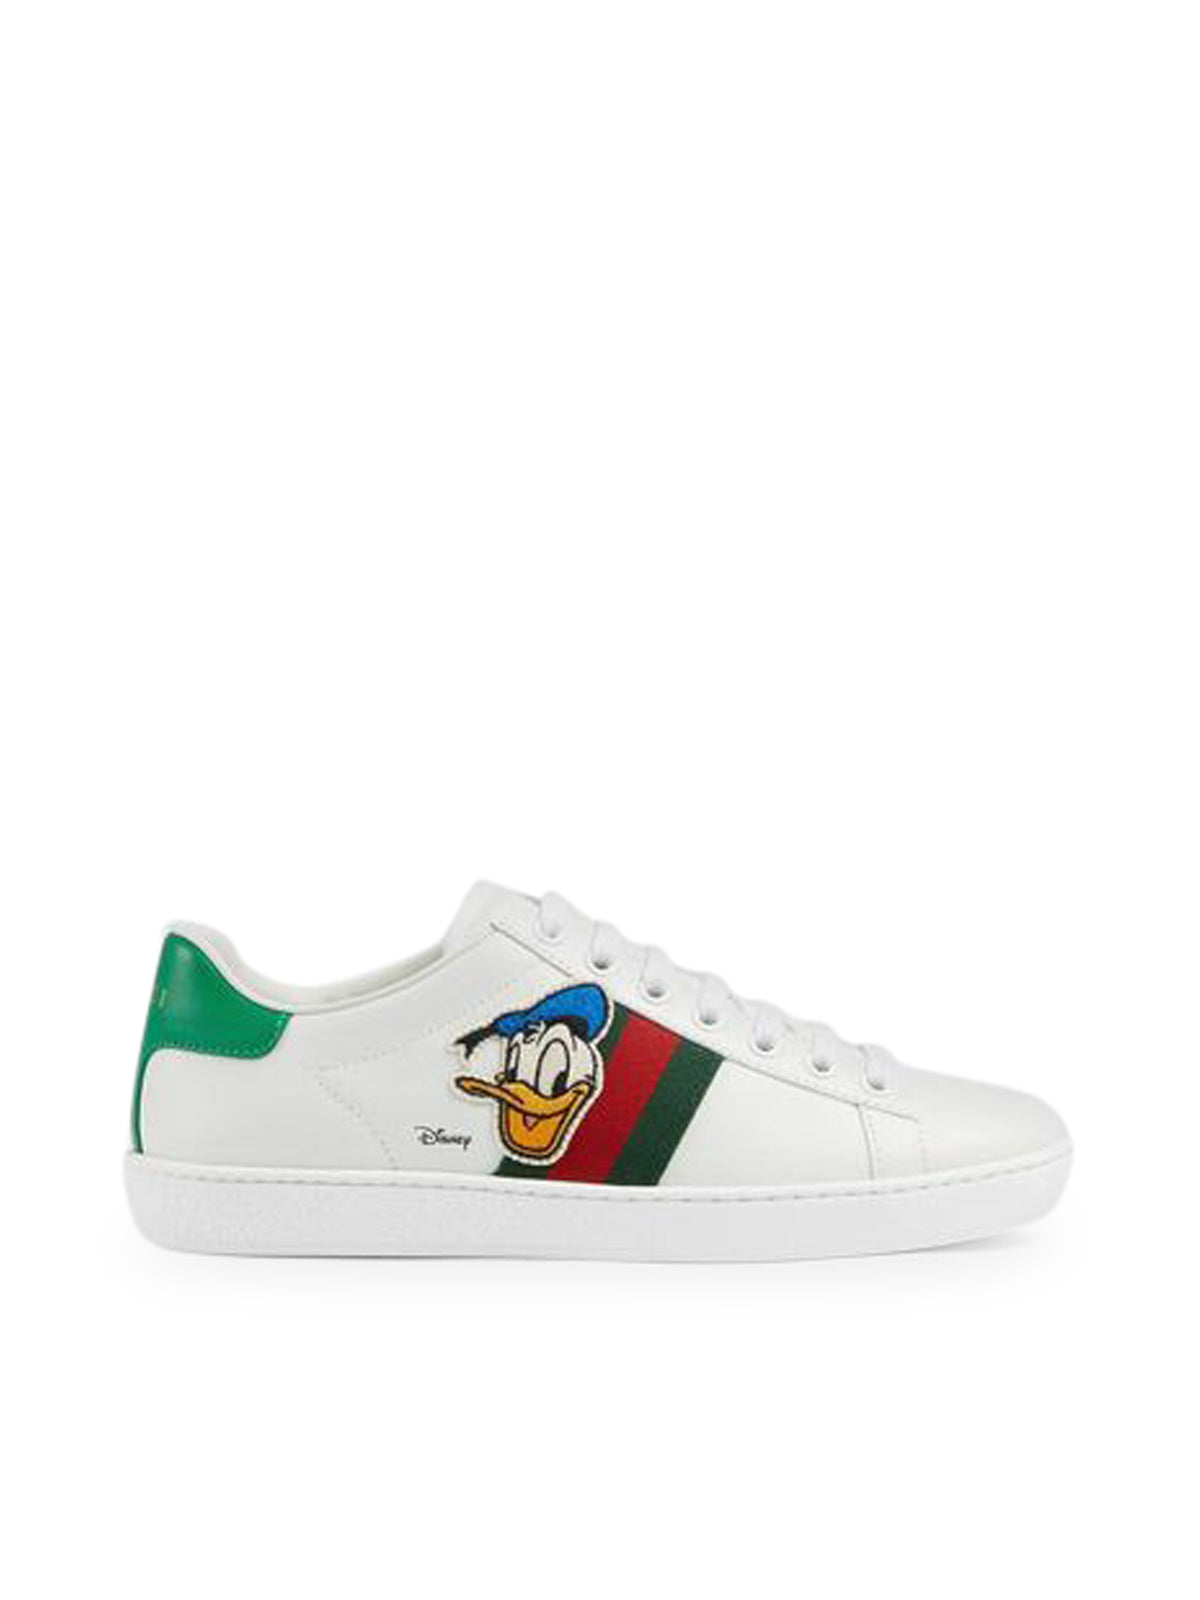 Sneakers Ace Gucci x Disney